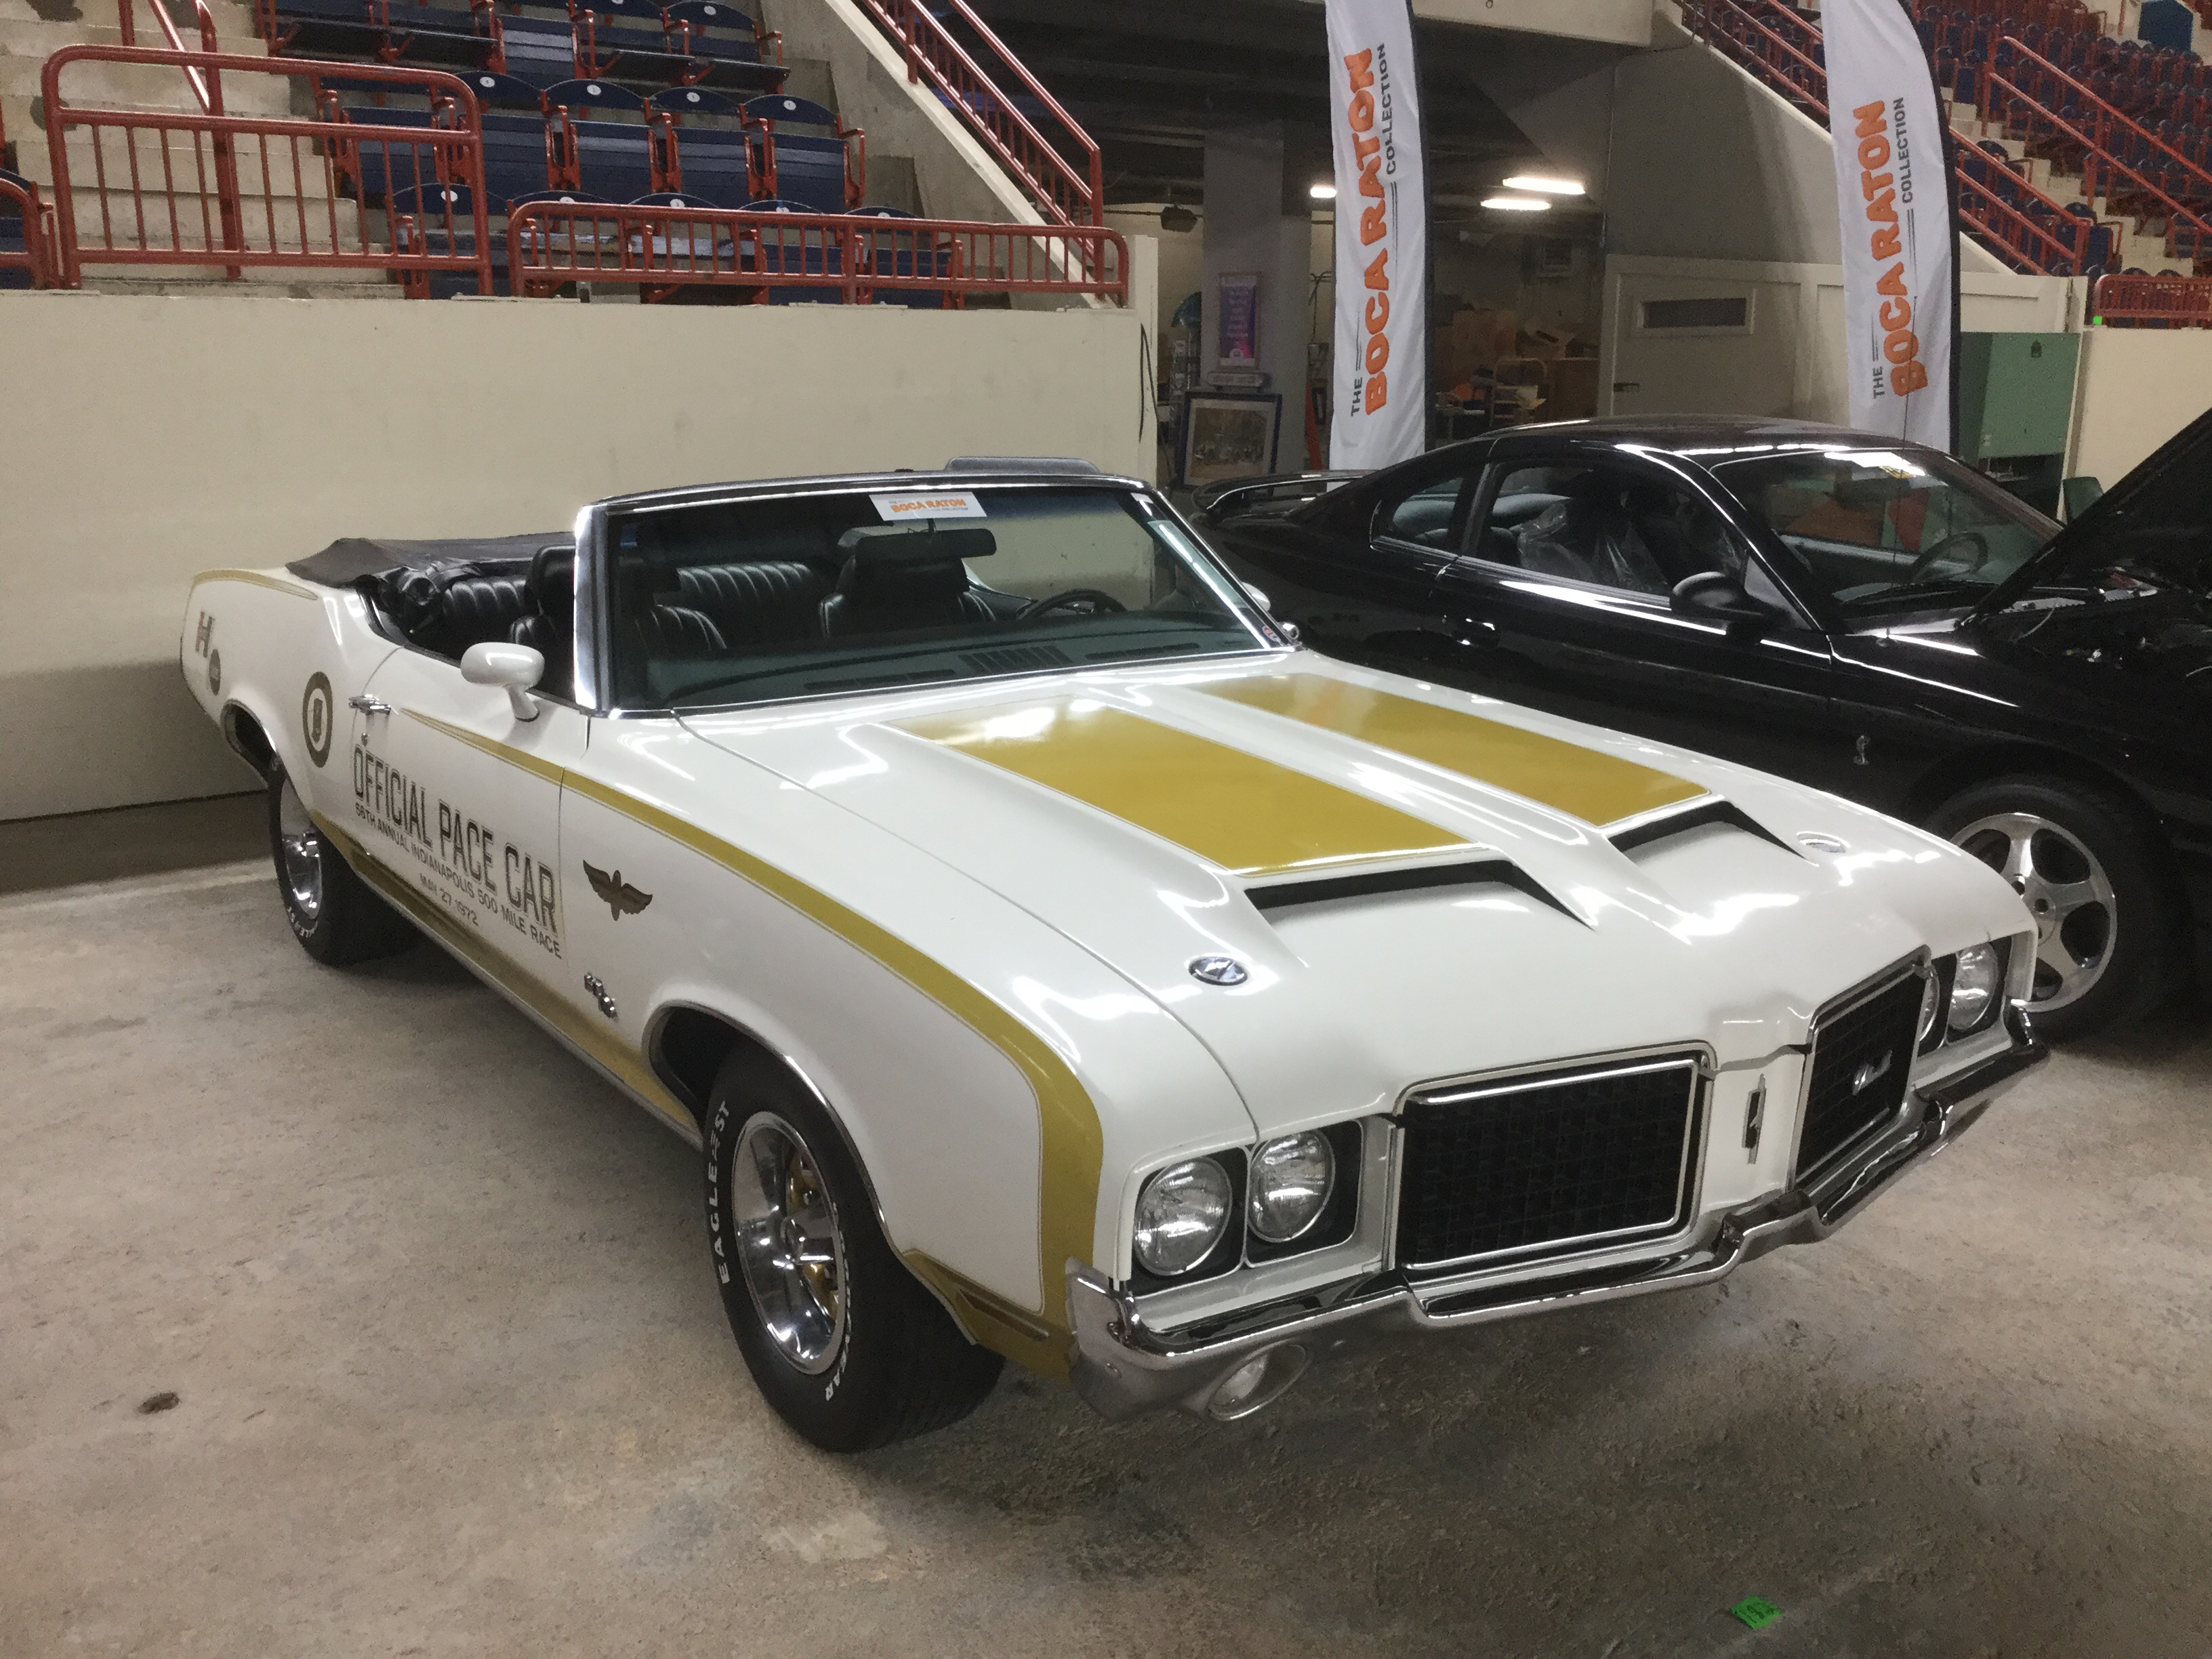 1968 Oldsmobile Cutlass Values | Hagerty Valuation Tool®